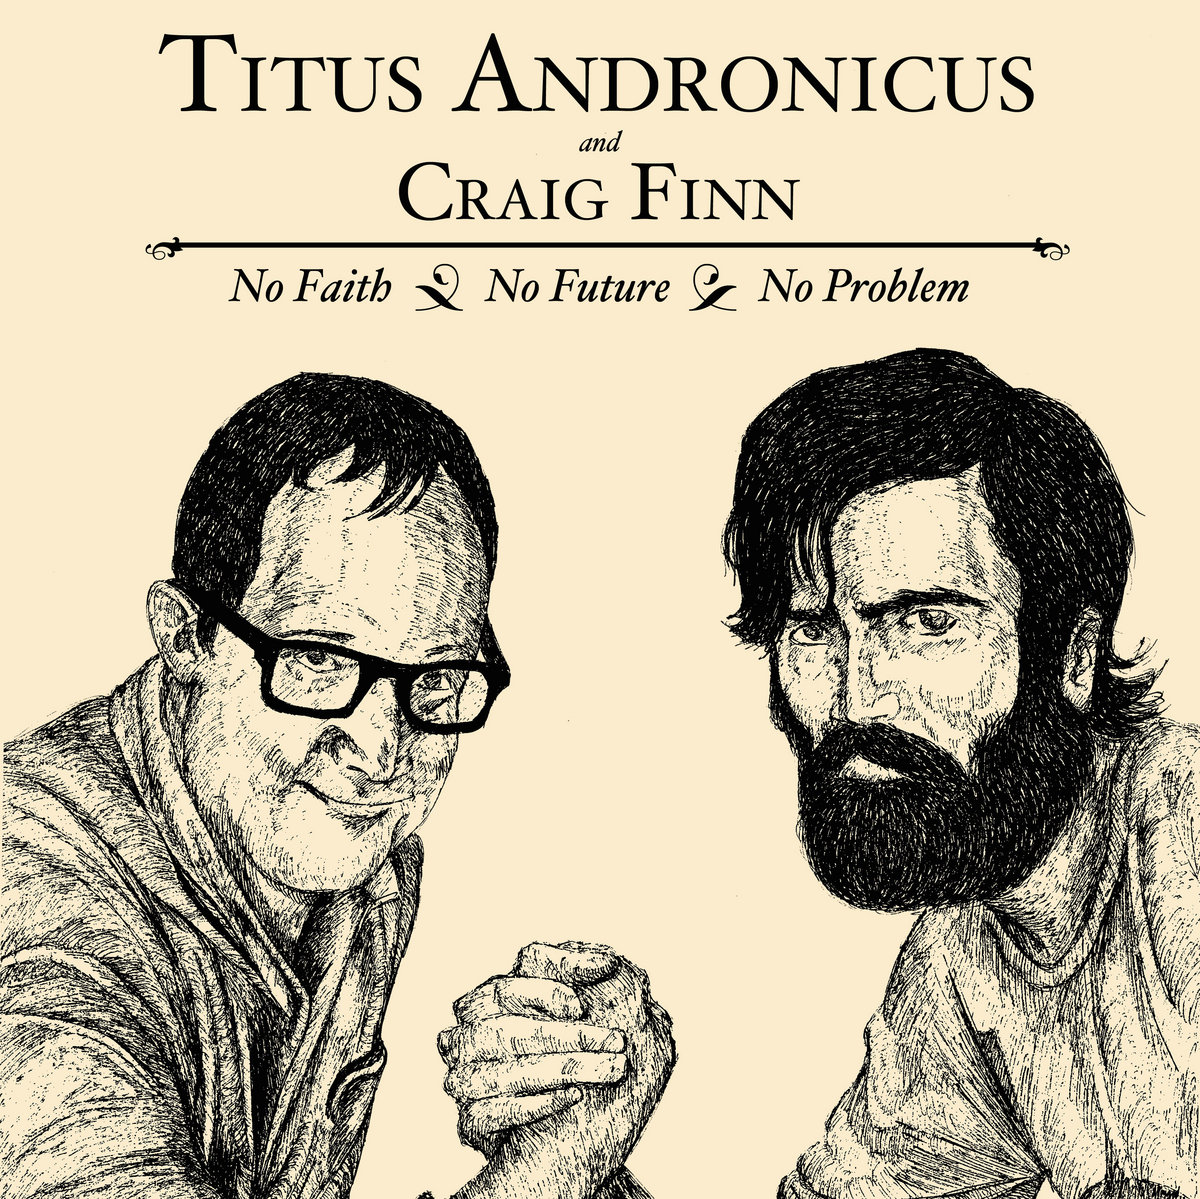 No future craig finn titus andronicus from no faith no future no problem by titus andronicus craig finn malvernweather Gallery